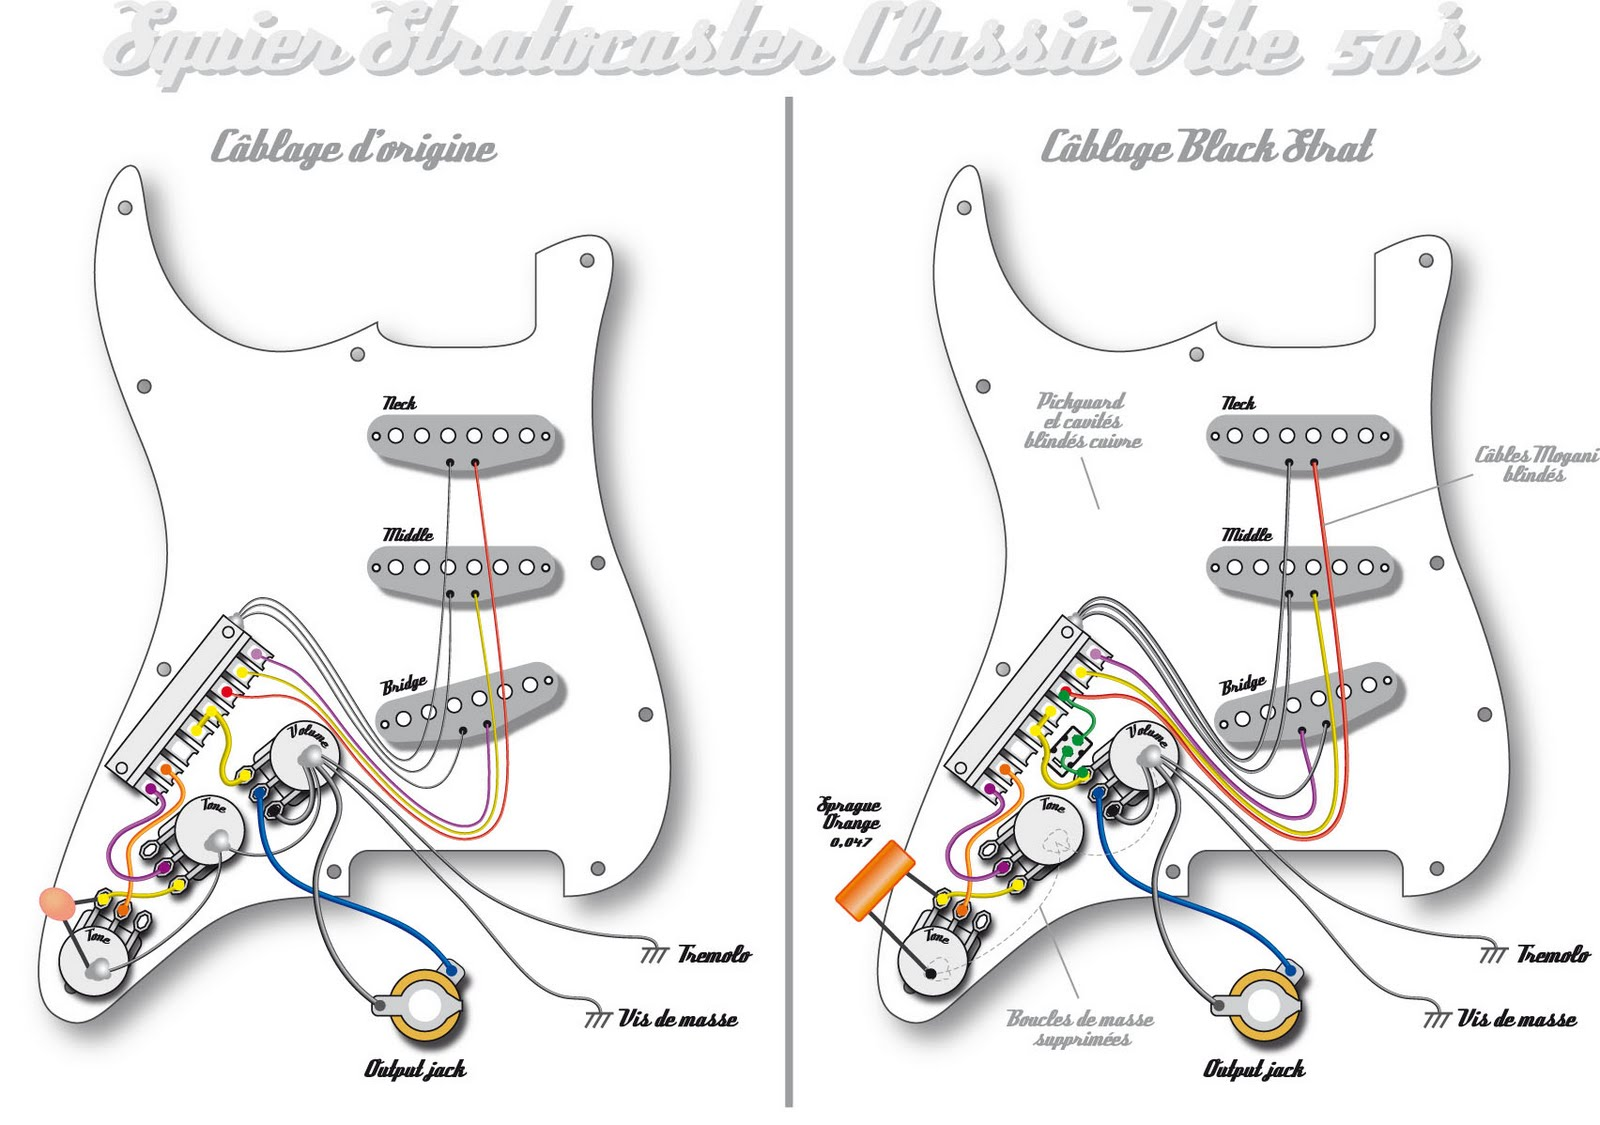 diagram] the black strat wiring diagram full version hd quality wiring  diagram - venndiagramcreate.enercia.fr  wiring and fuse image